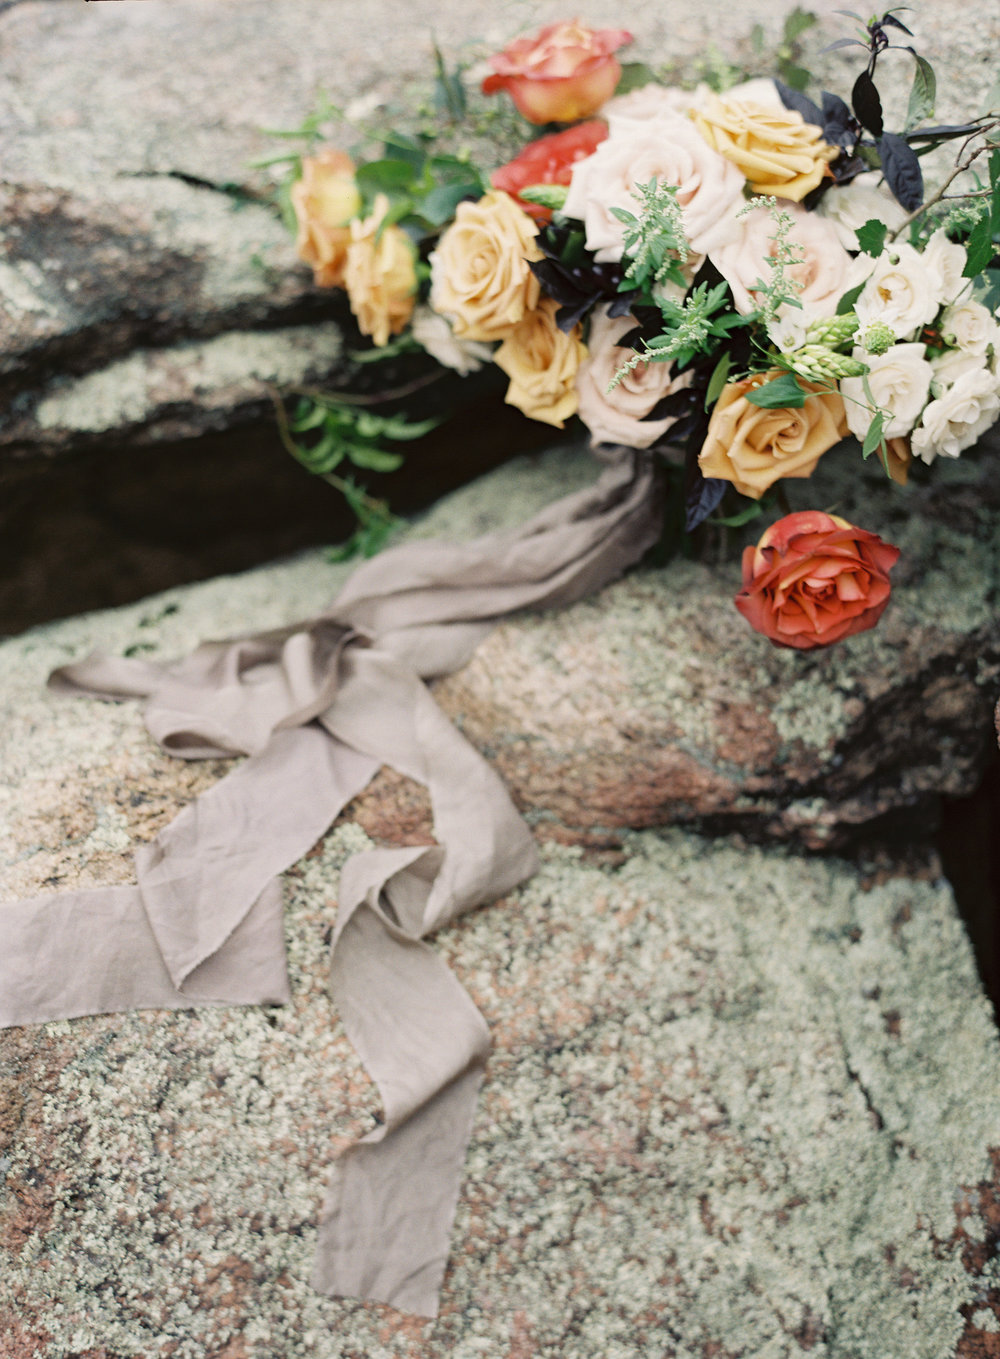 Autumn Wedding Inspiration at the Mill at Fine Creek by Richmond Virginia Wedding Planner East Made Event Company and Michael and Carina Photography09.jpg